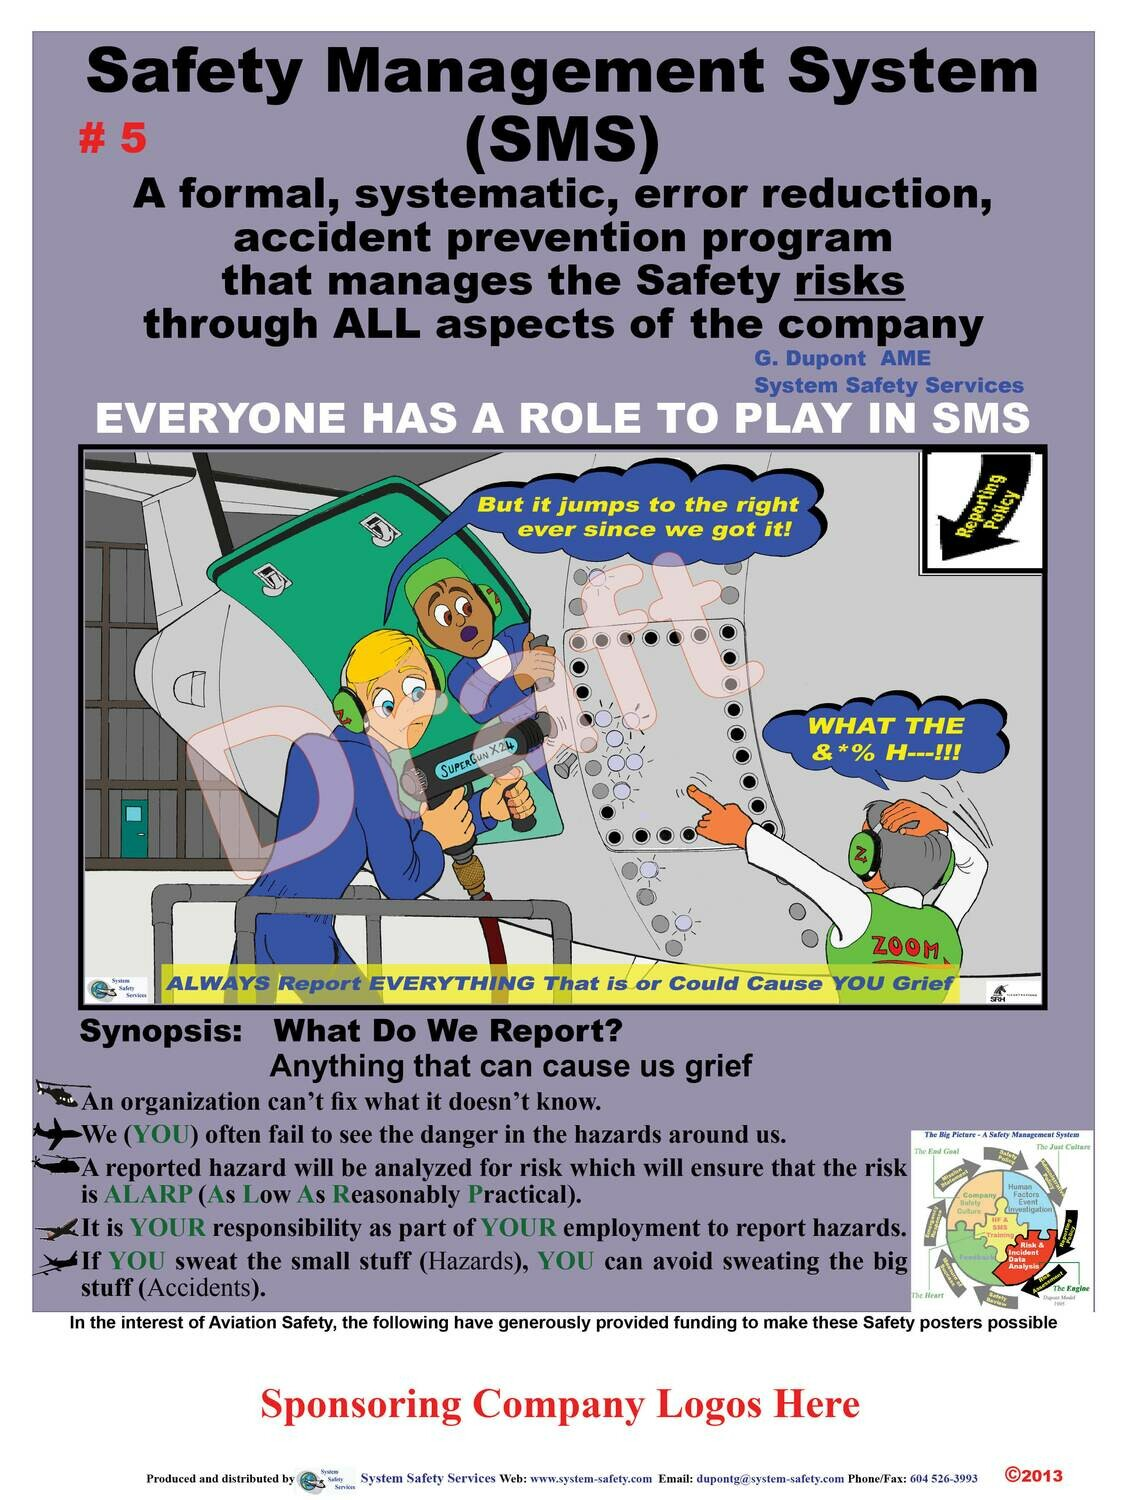 Safety Management System Posters (12)